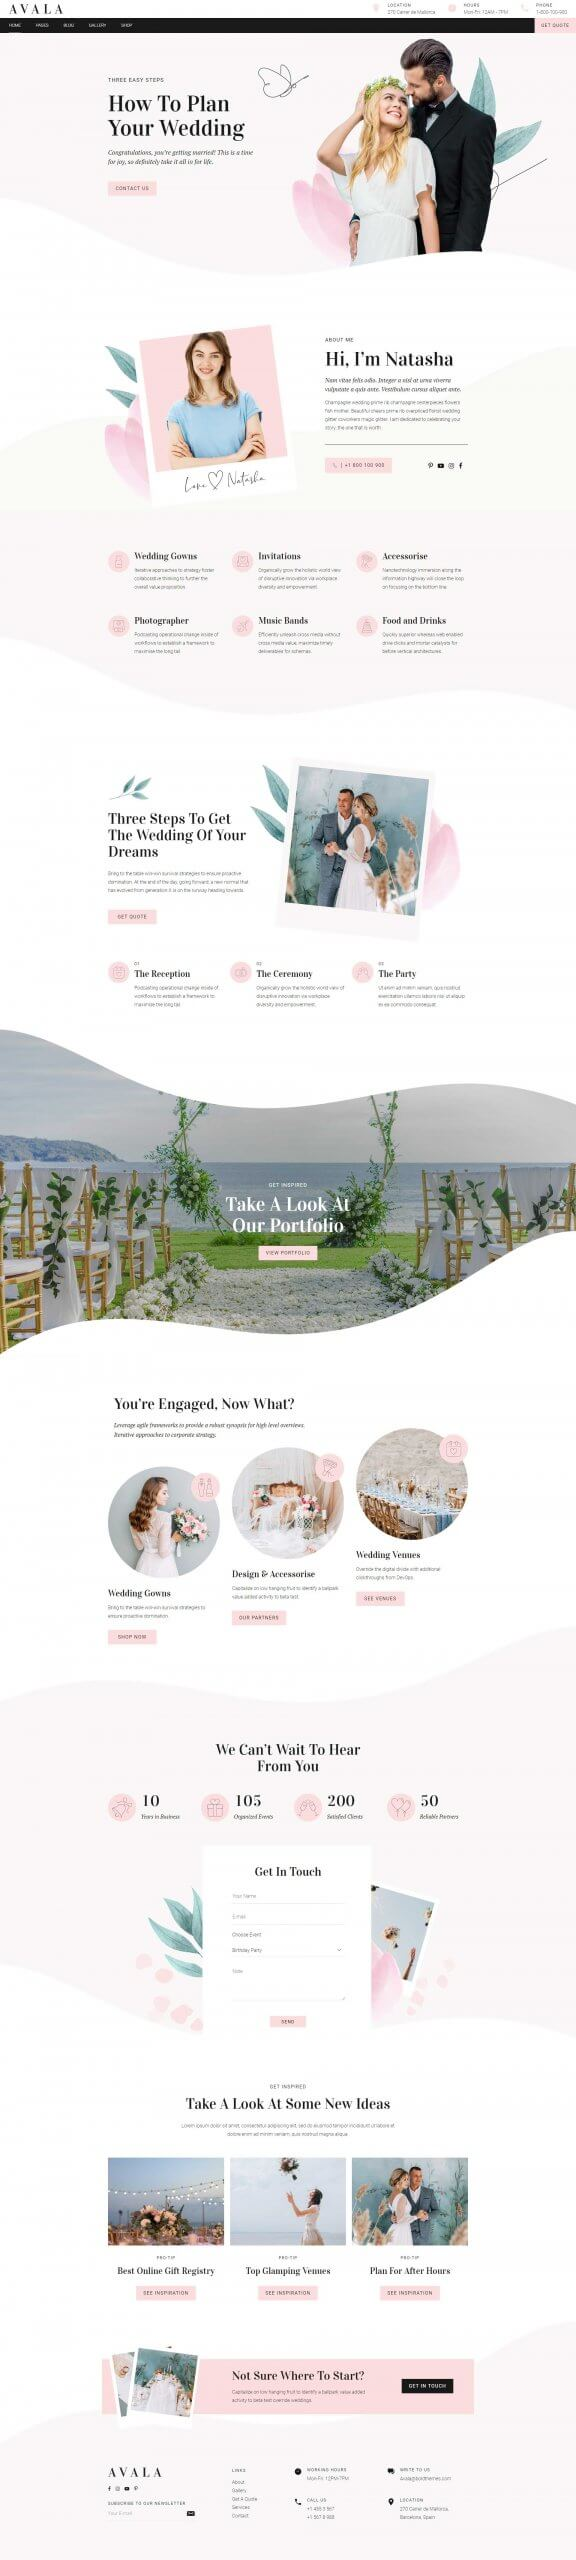 http://avala.bold-themes.com/wp-content/uploads/2021/02/Summer-Home-01-scaled.jpg